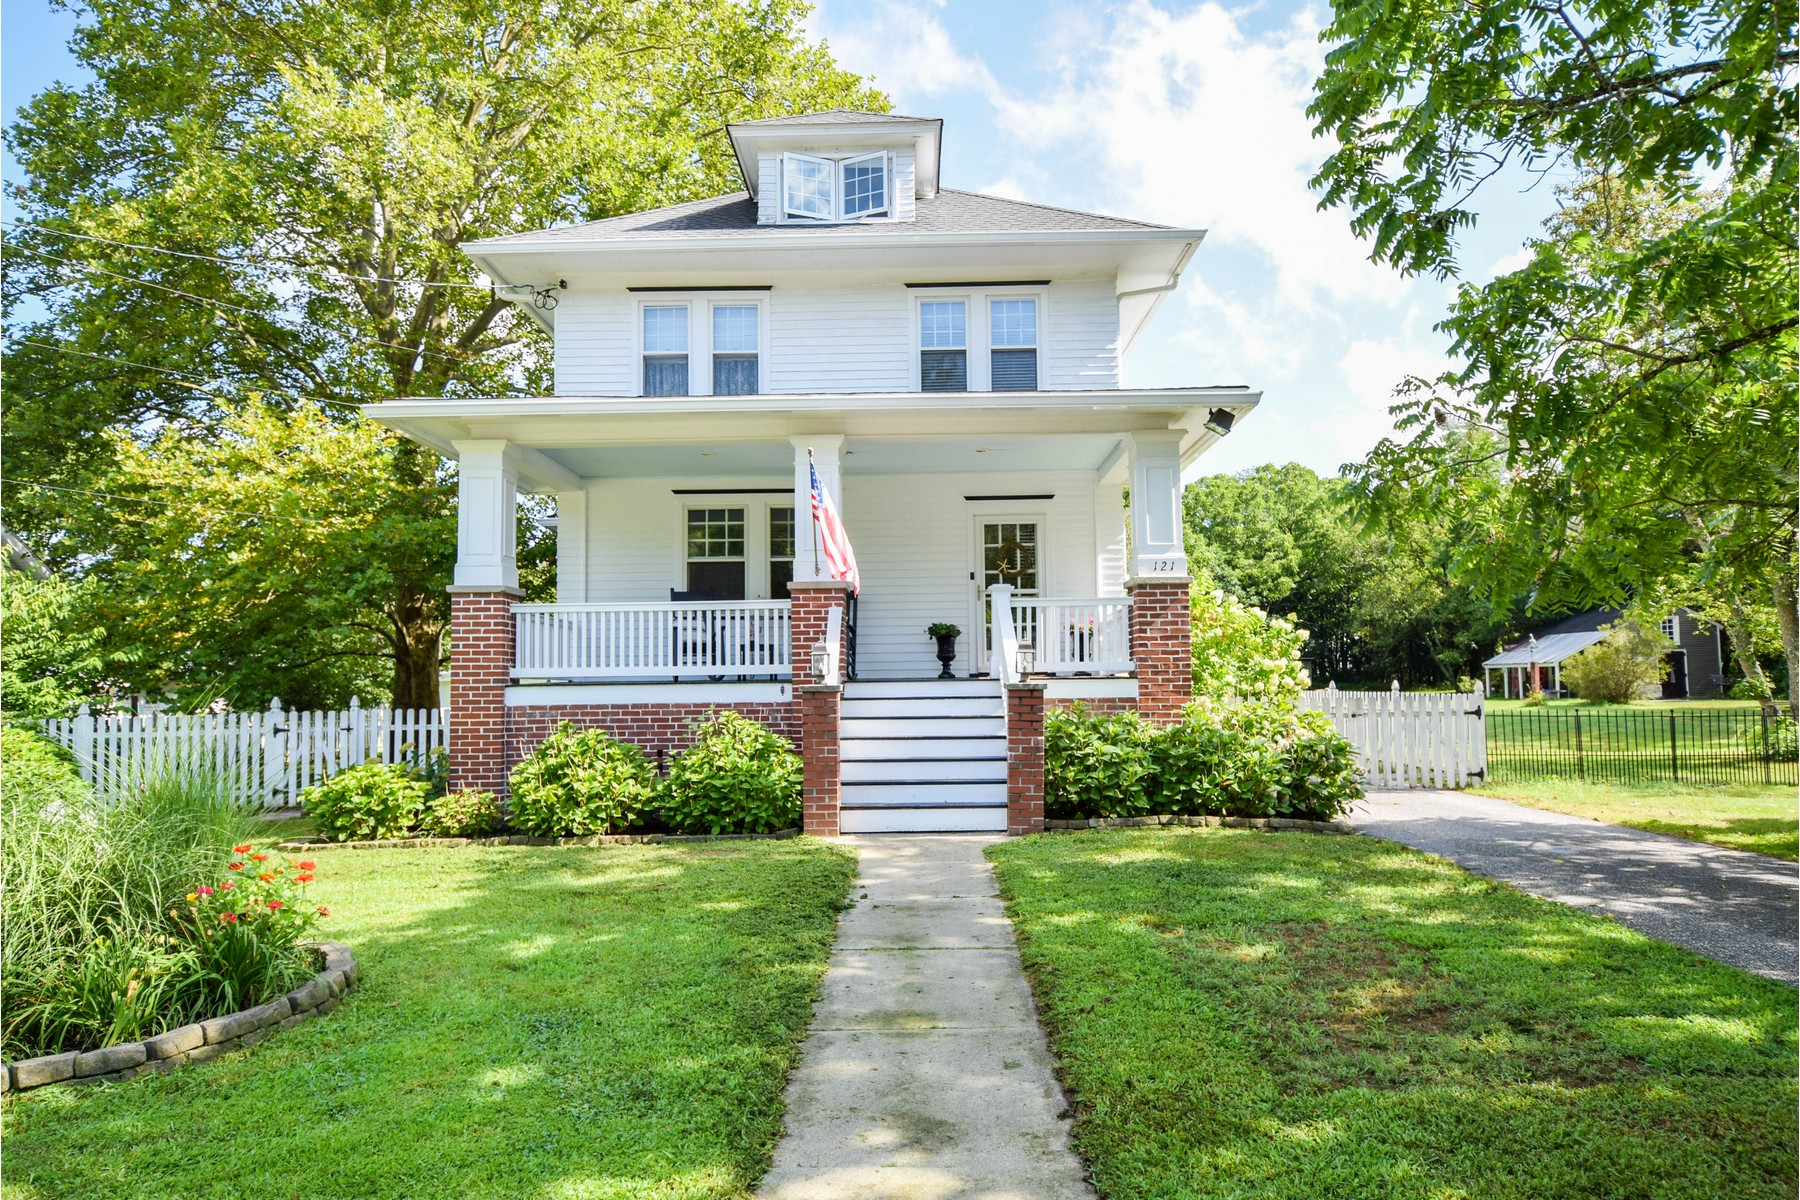 Single Family Homes for Sale at Charming 1920's Home 121 Reading Avenue, Tuckahoe, New Jersey 08250 United States